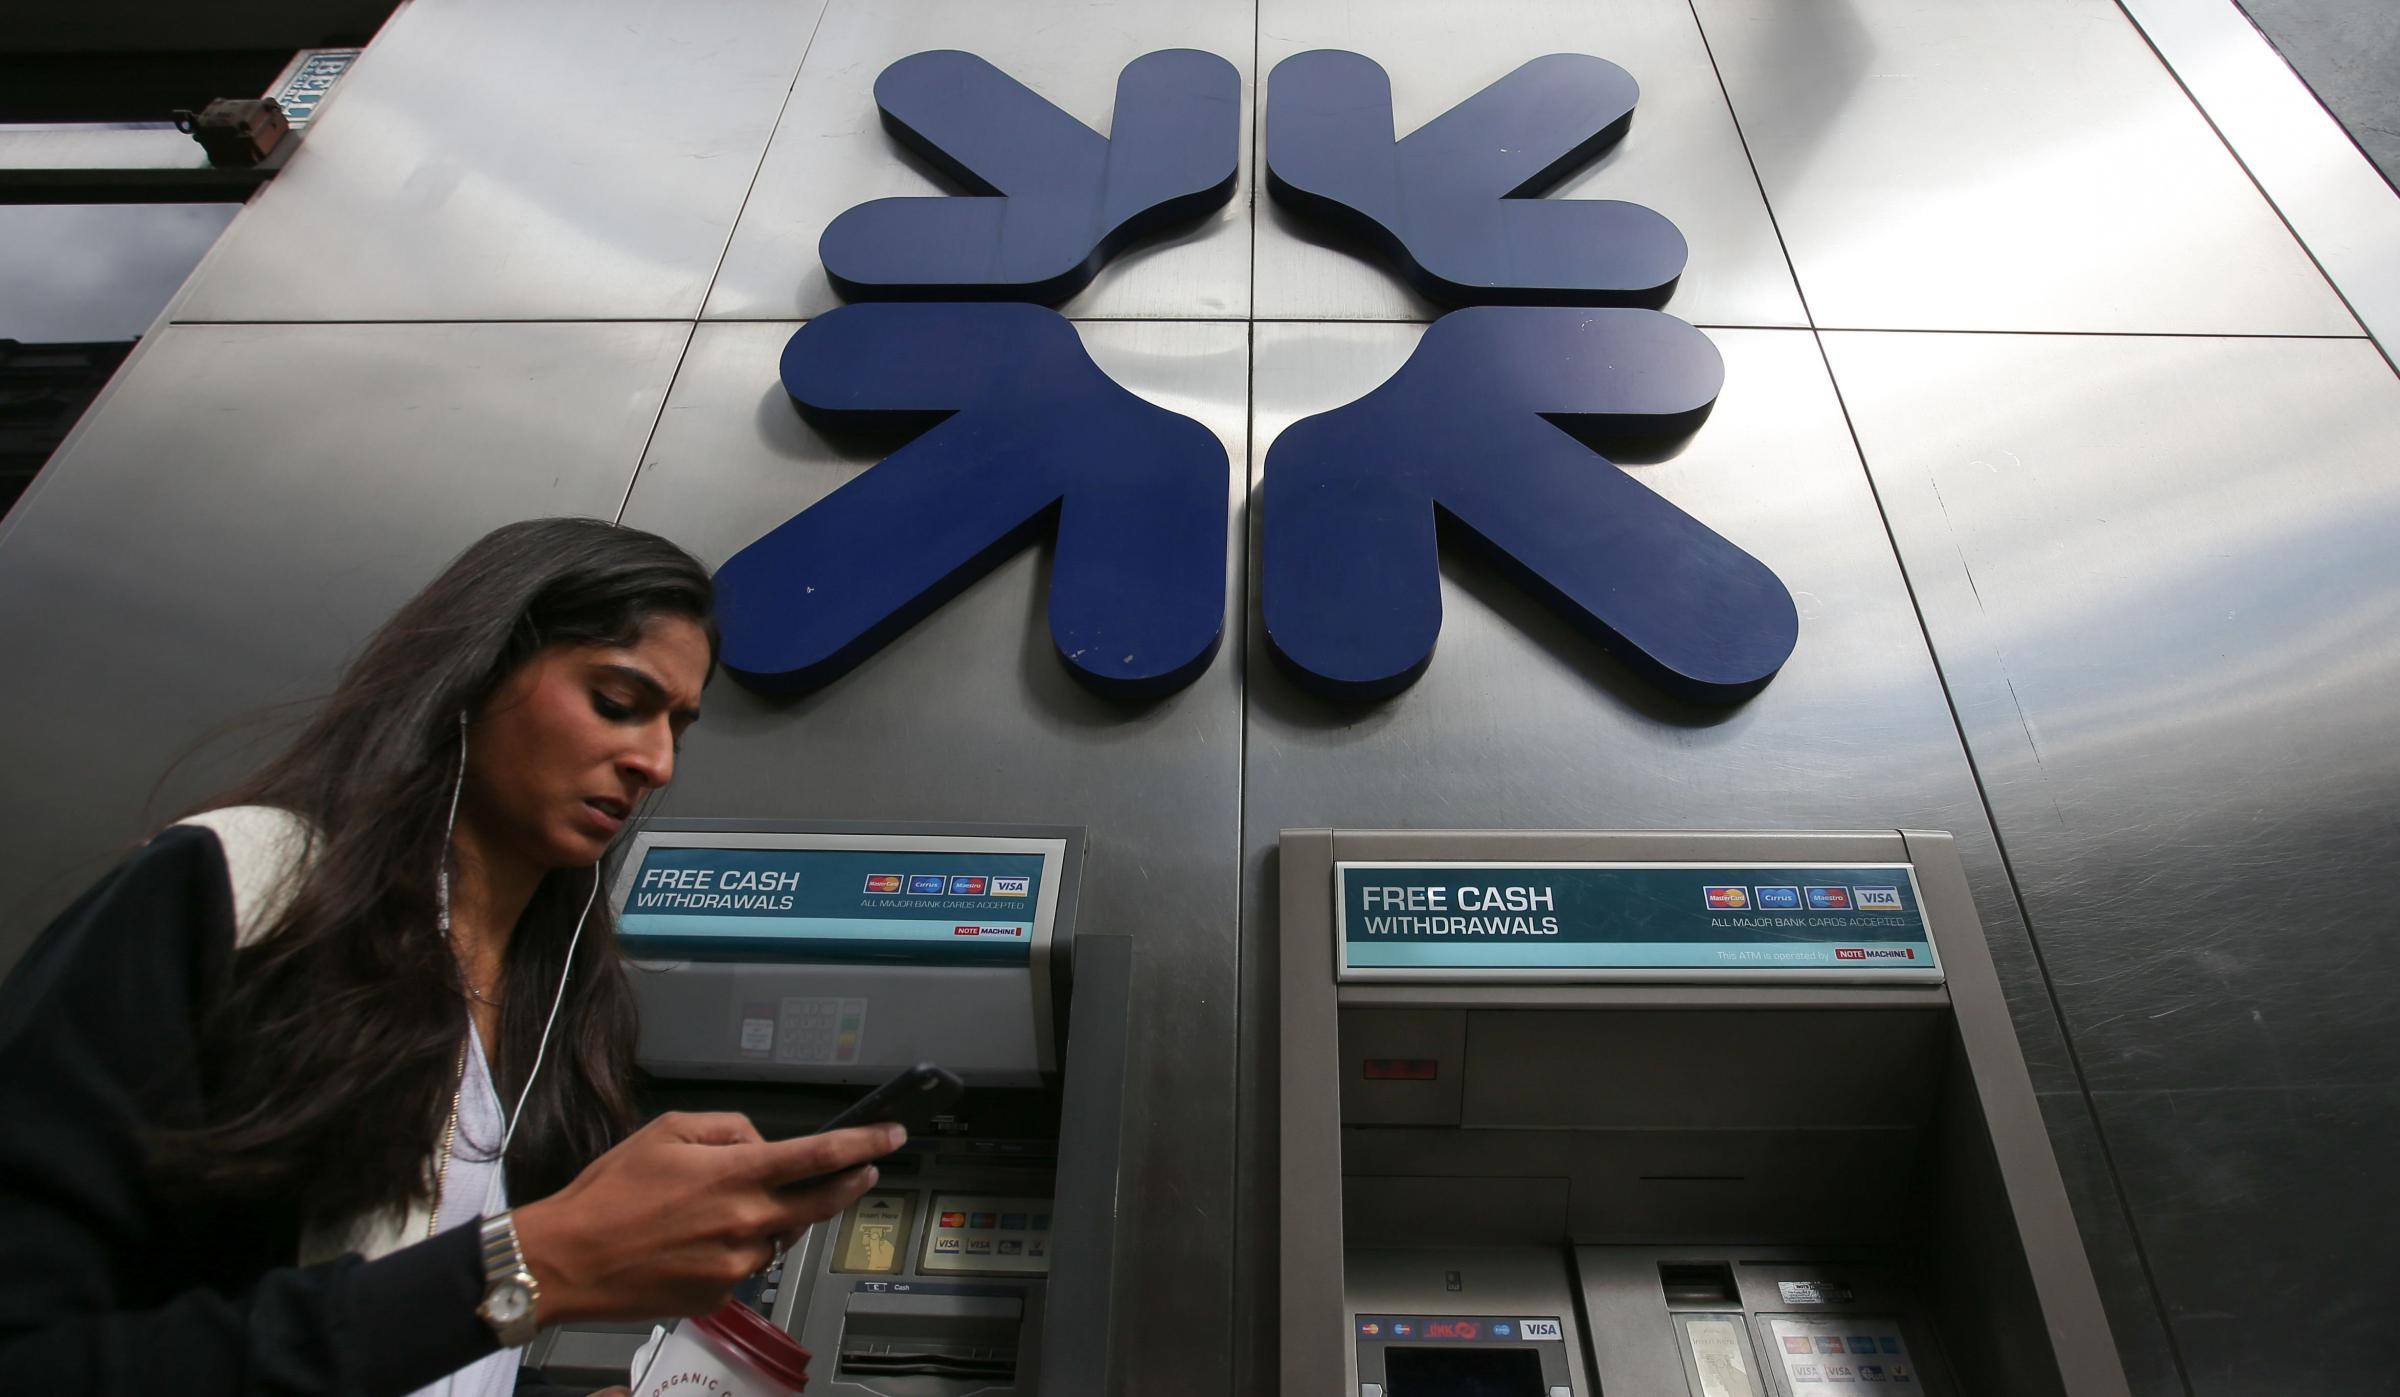 RBS has decided to close 52 of its branches across Scotland: Getty